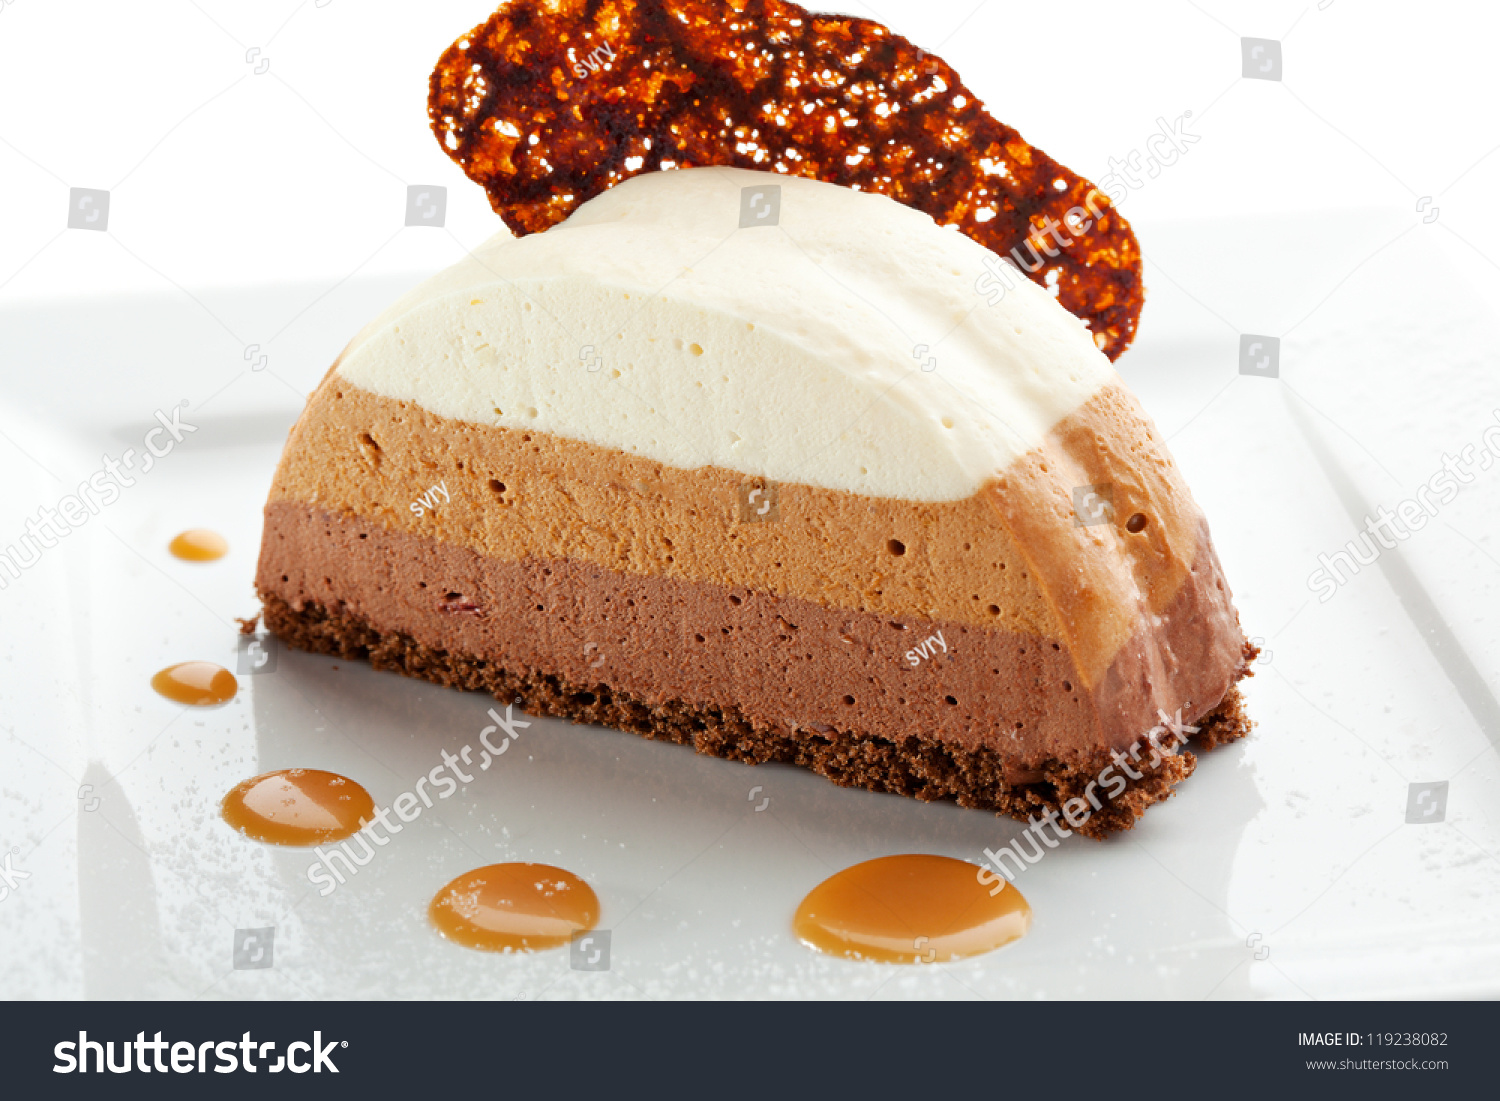 Dessert - Three Layer Chocolate Cake Stock Photo 119238082 ...